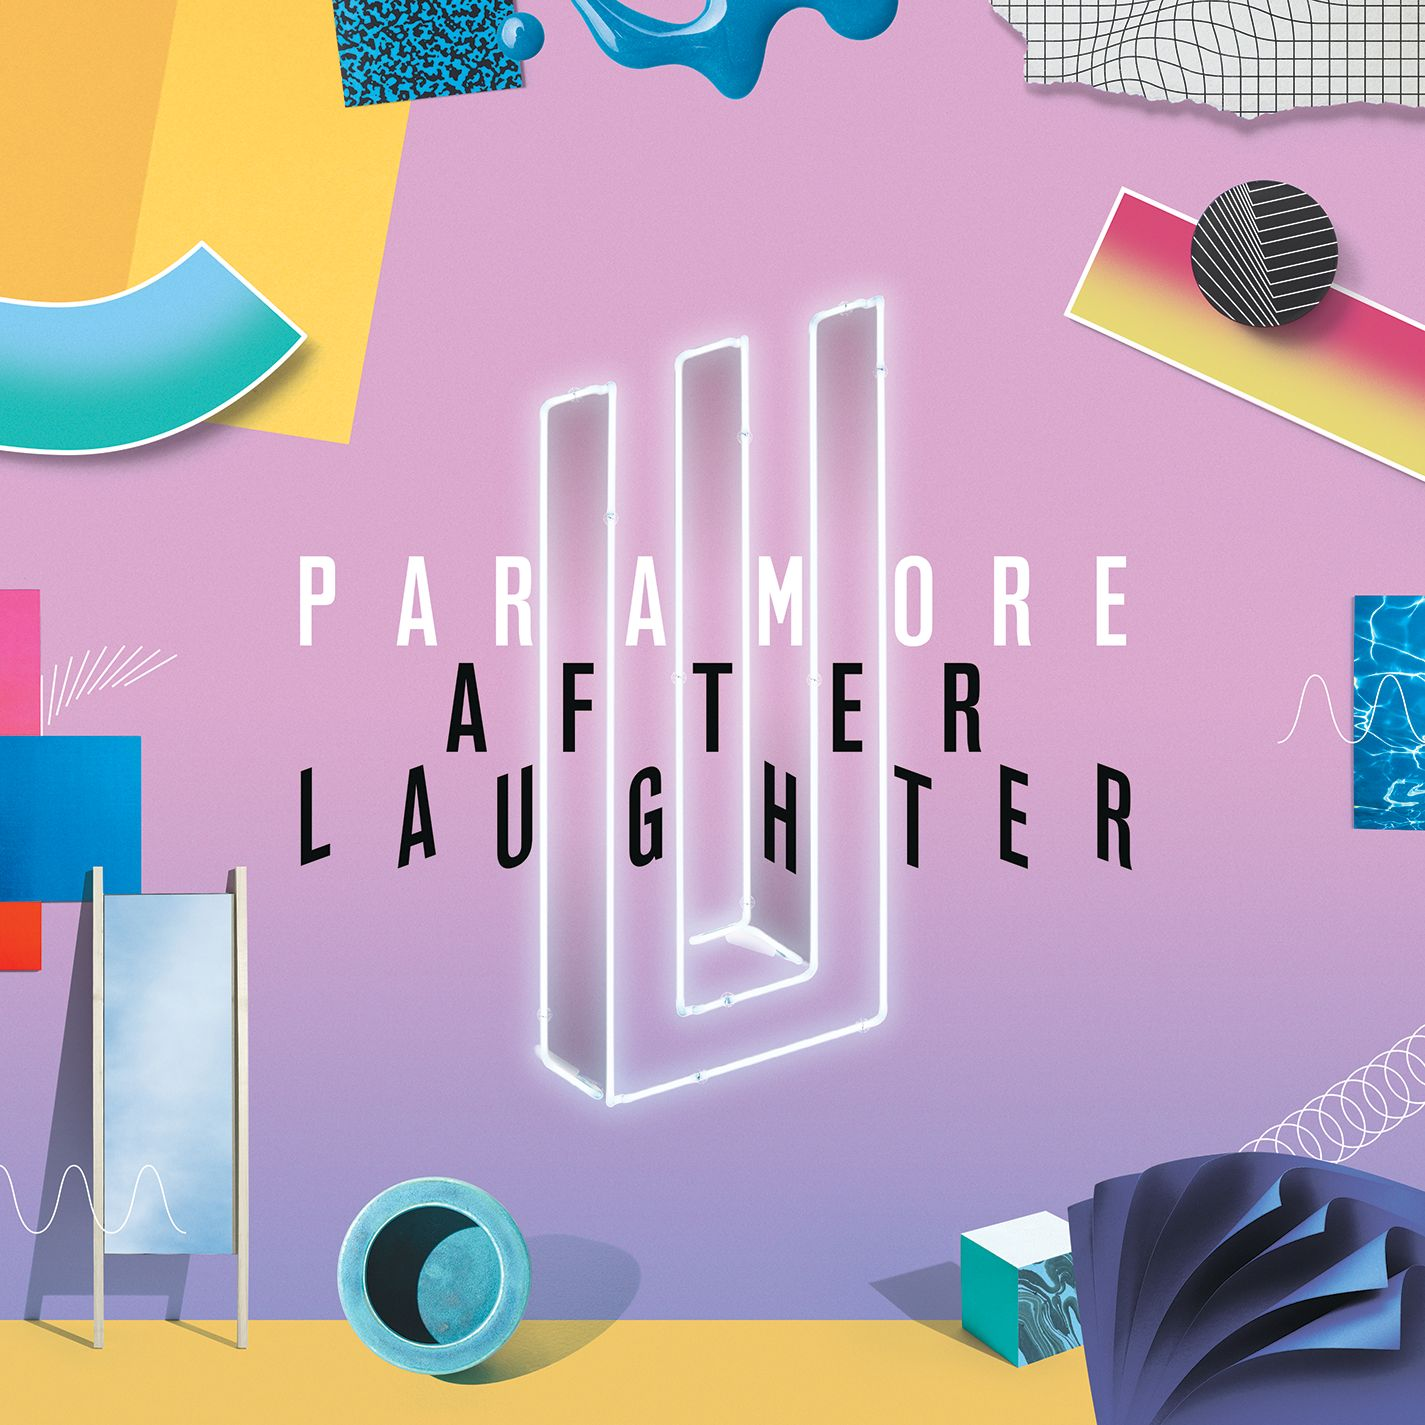 Elpuhultál? Nem baj! - Paramore – After Laughter (2017)